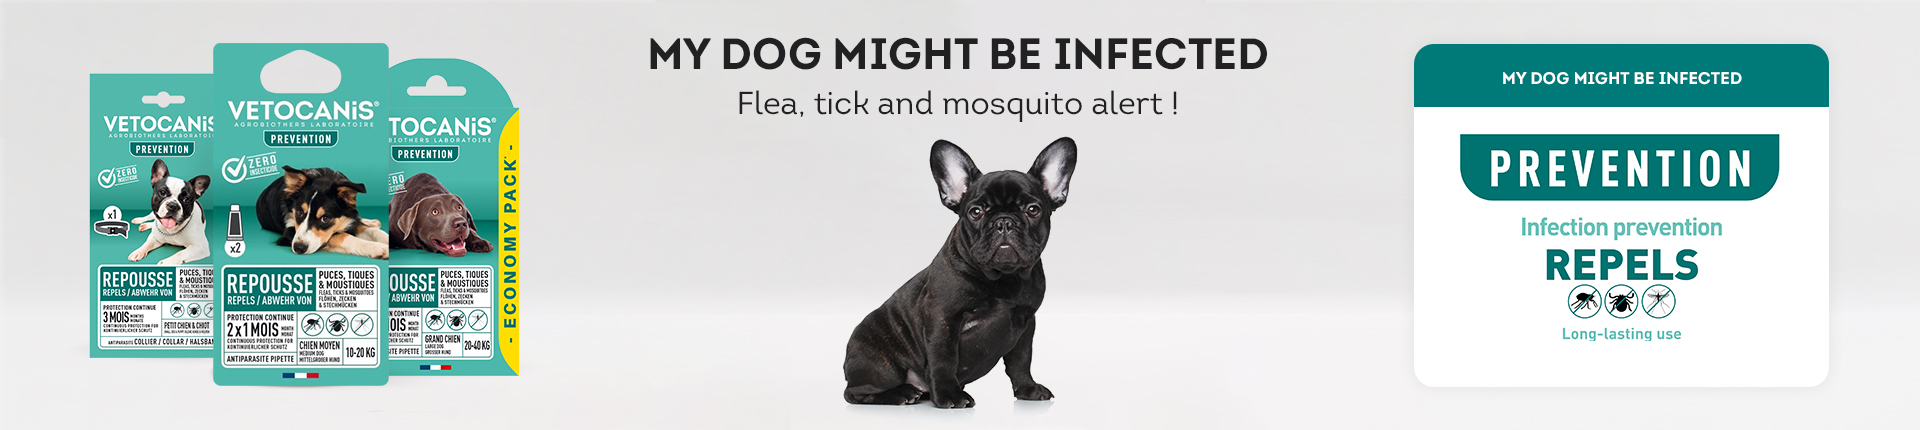 PREVENTION - Repeals Flea & Tick